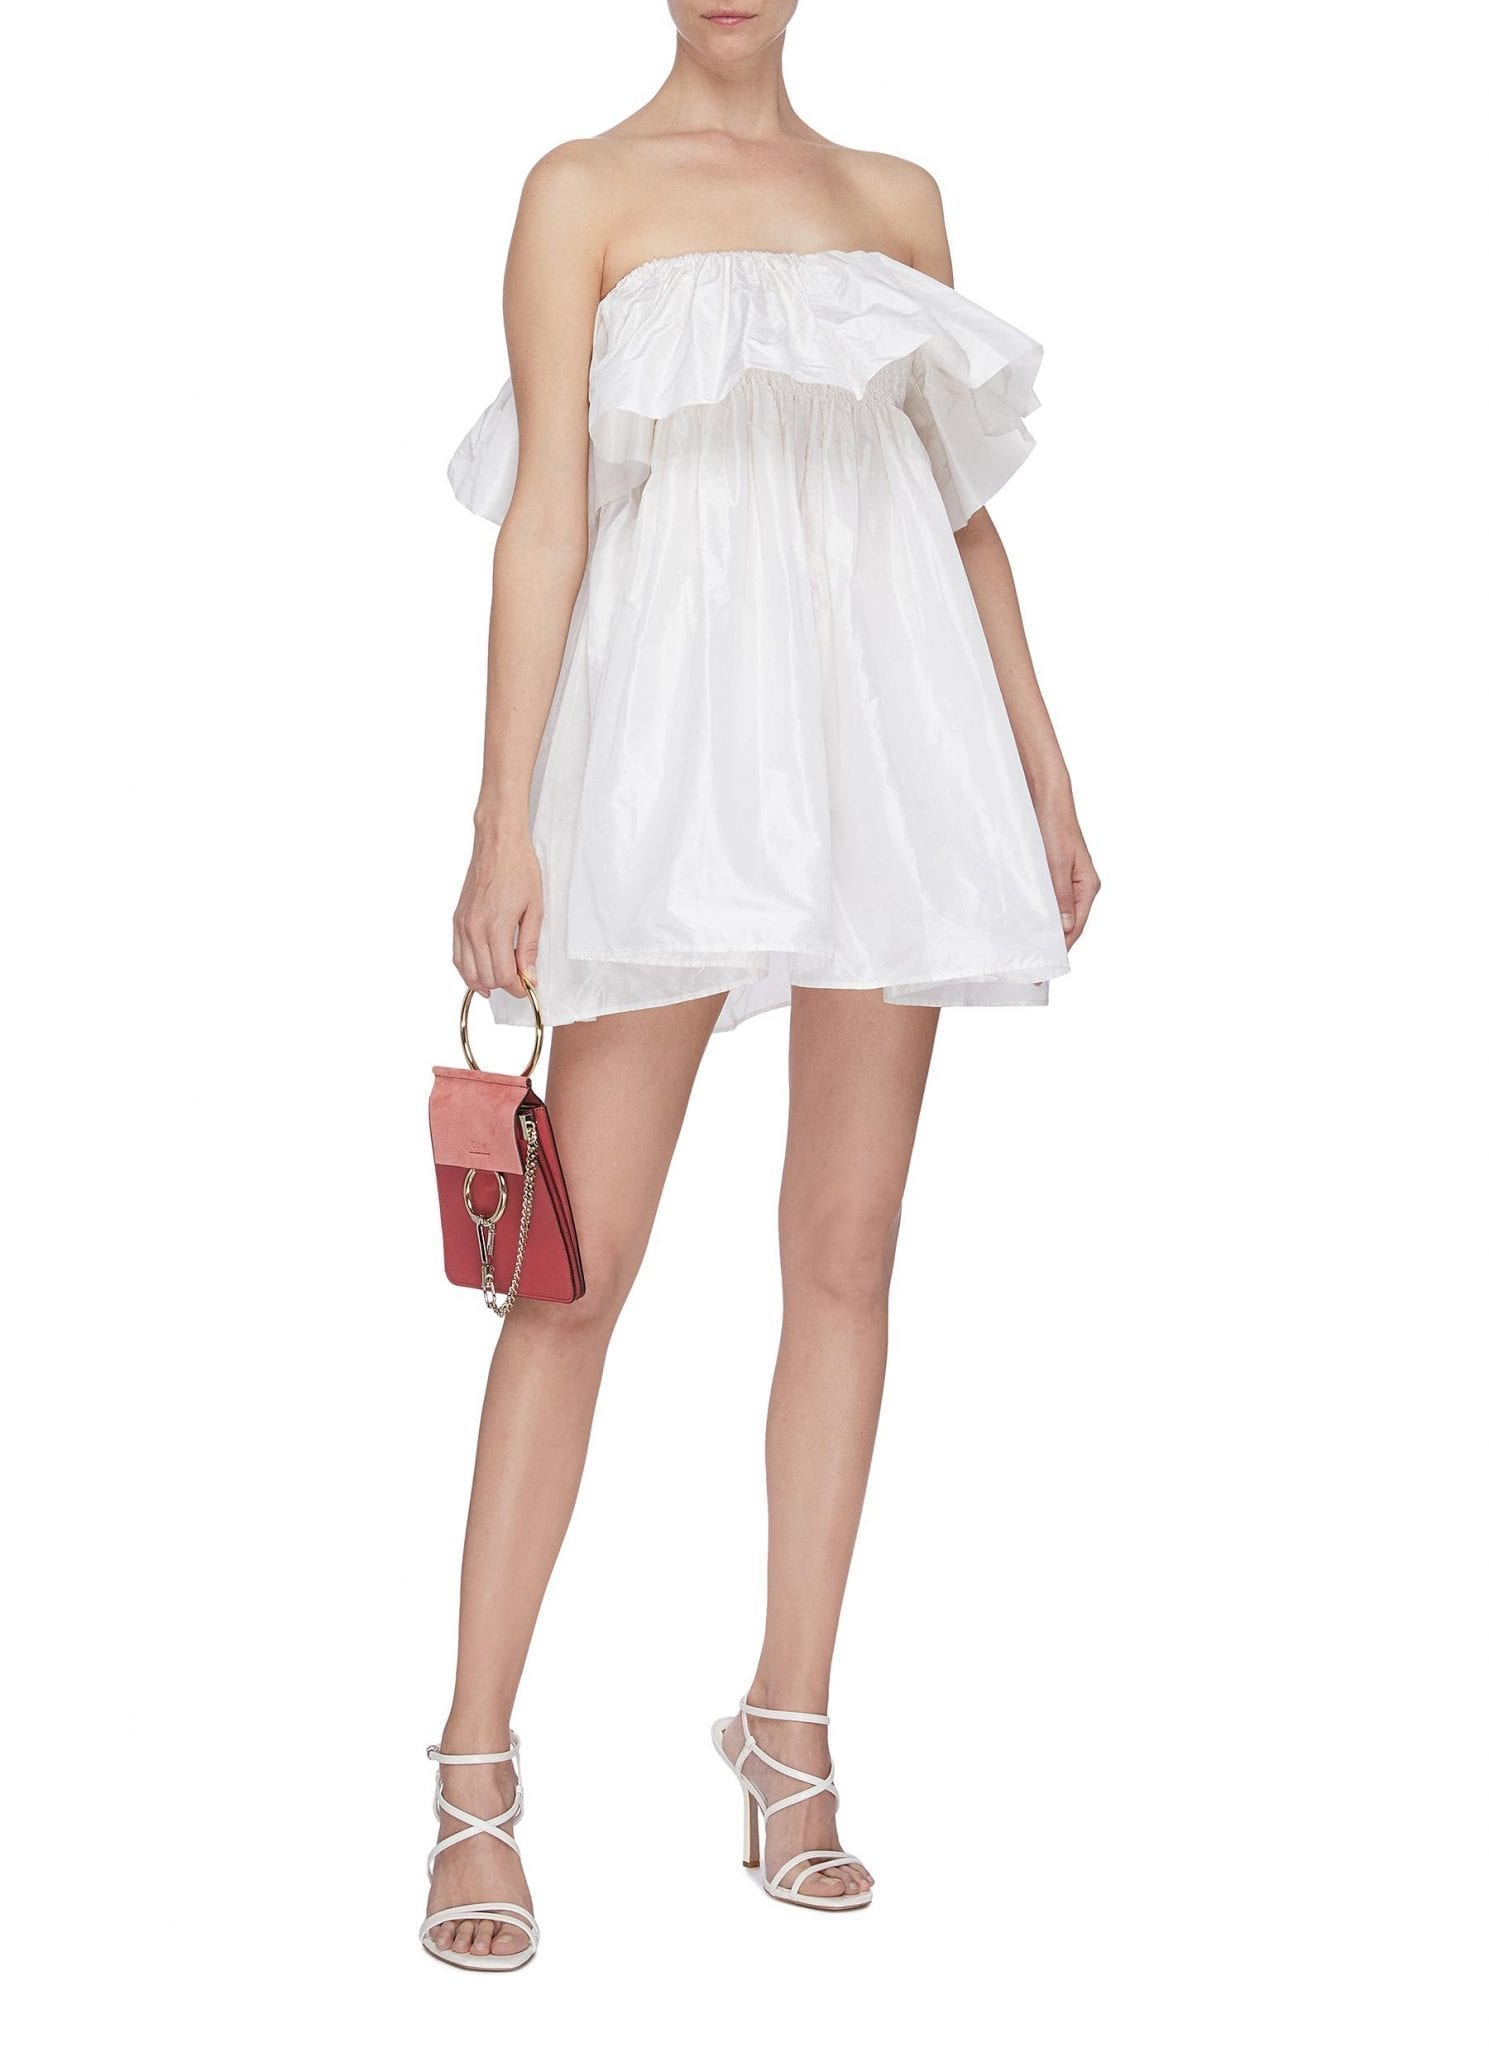 LEAL DACCARETT 'Perlas Blancas' Ruffle Sleeveless Dress